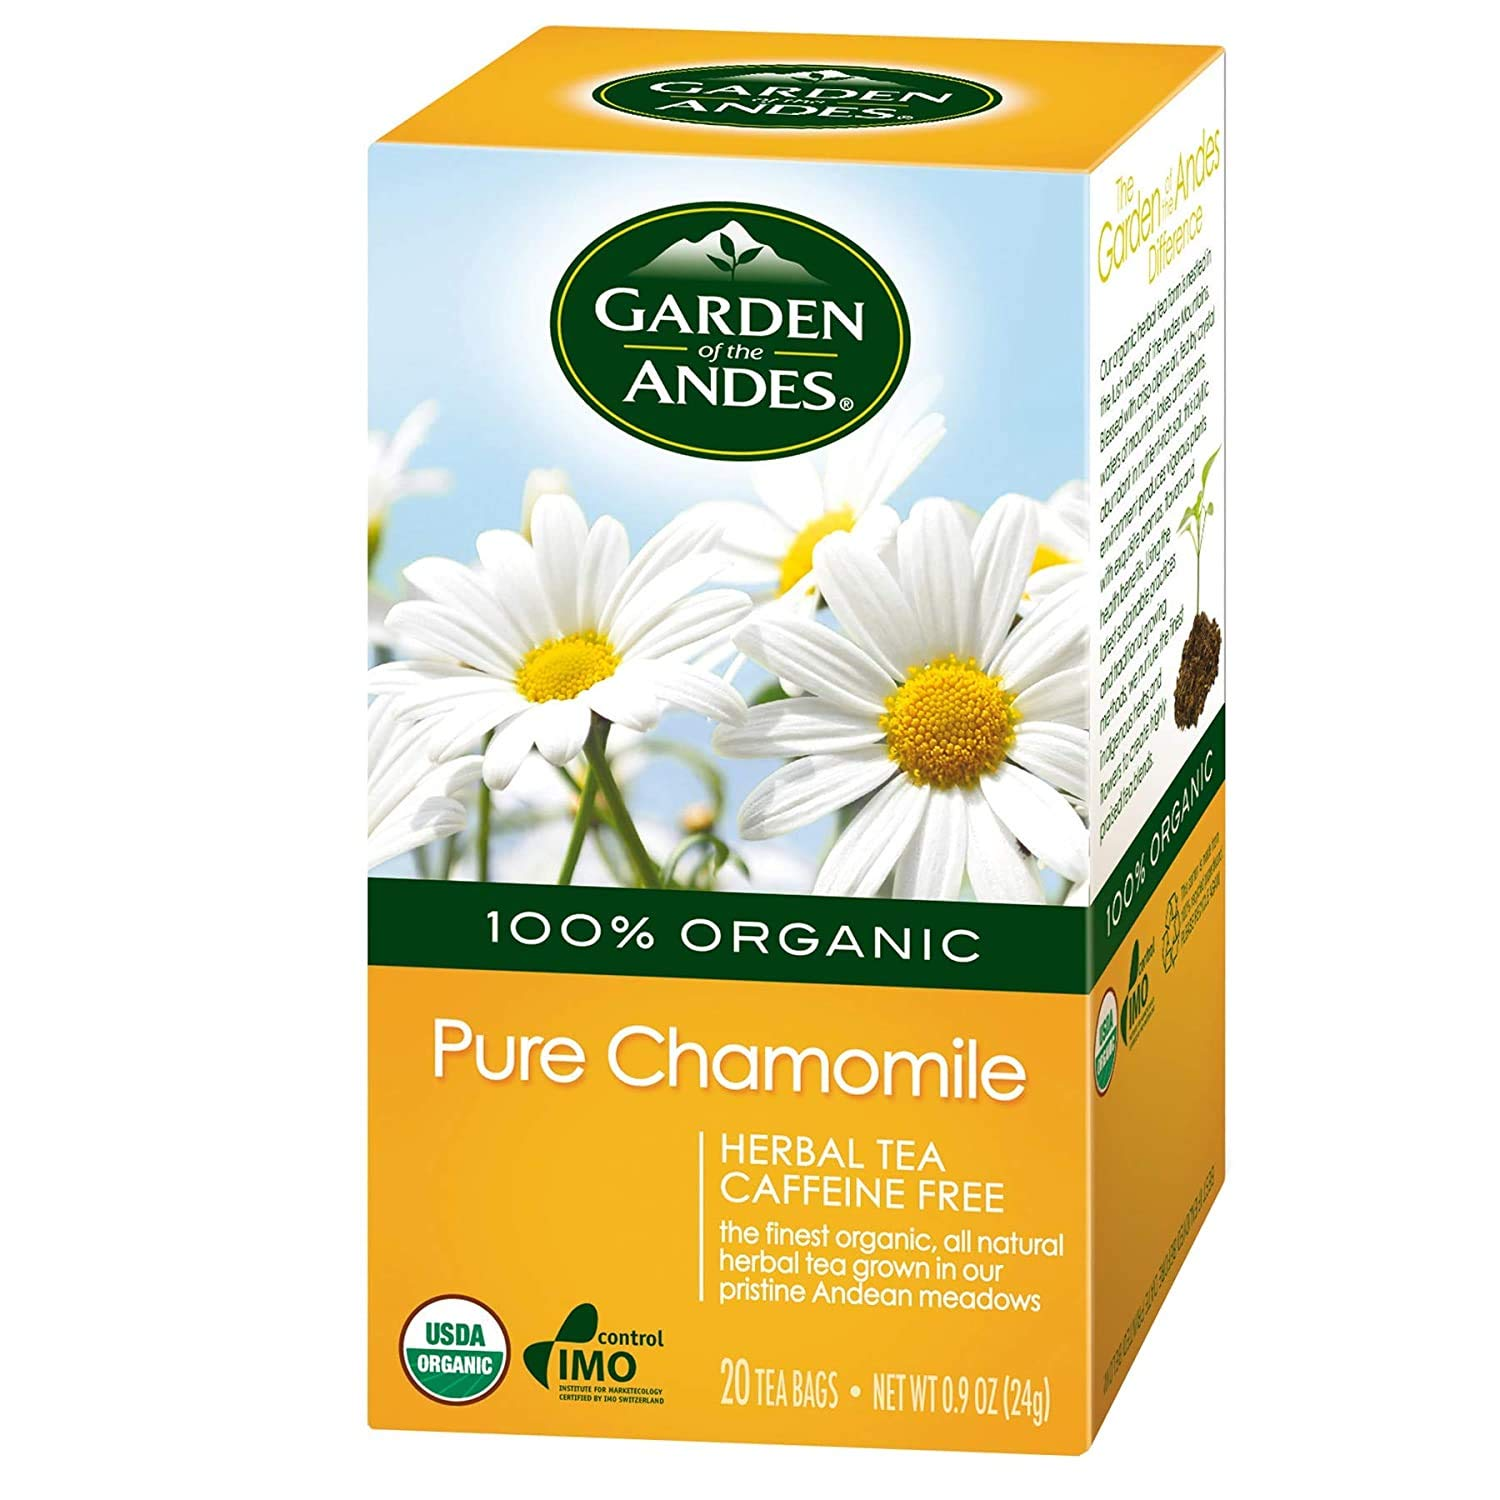 Garden of the Andes Herbal Organic Decaf Chamomile Hot Tea Bags, 0.9 oz, 20 Tea Bag Count (Pack of 6 Boxes)